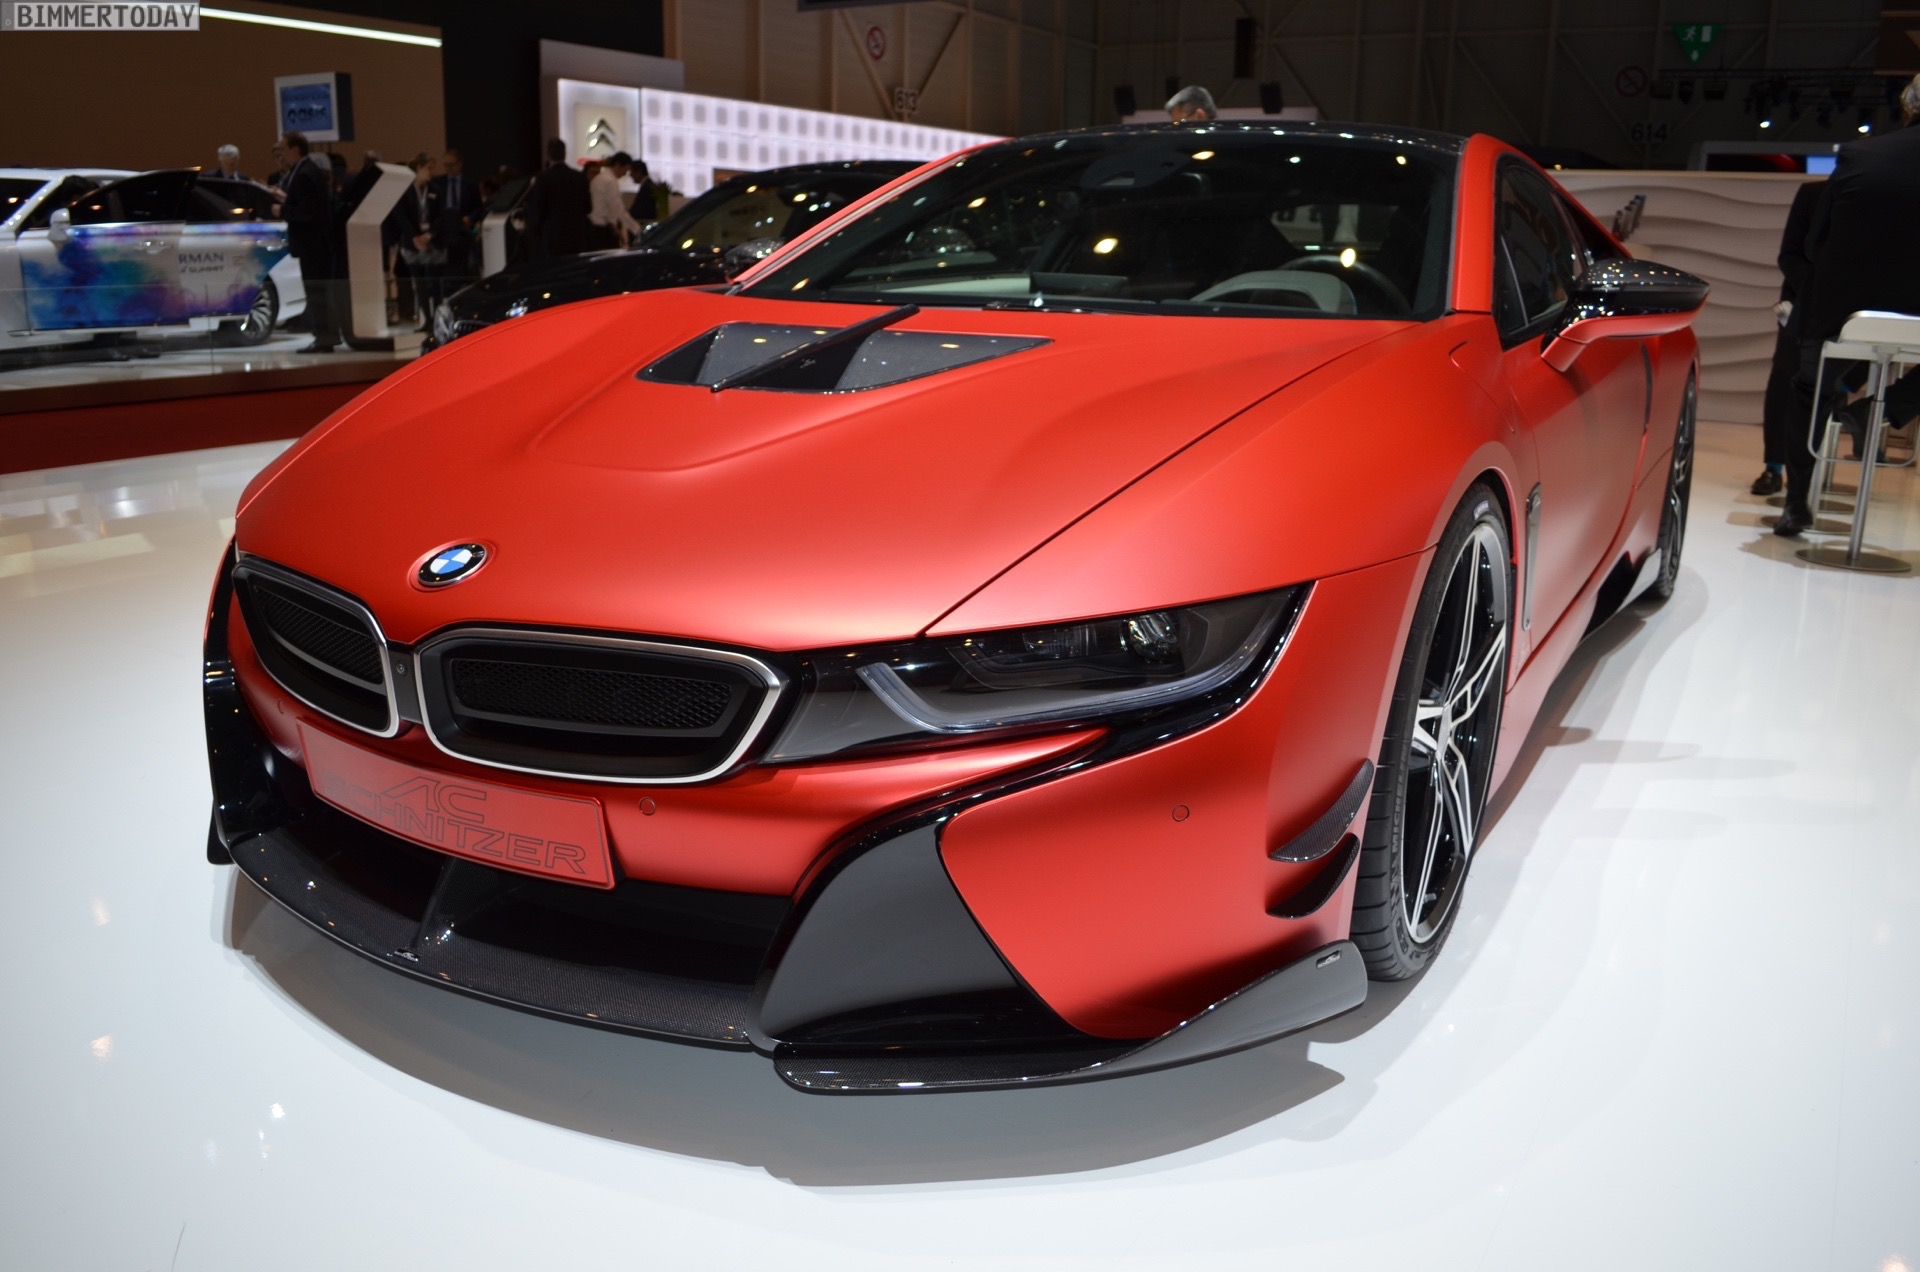 Photos Ac Schnitzer S Inferno Red Bmw I8 Bmw Sg Bmw Singapore Owners Community